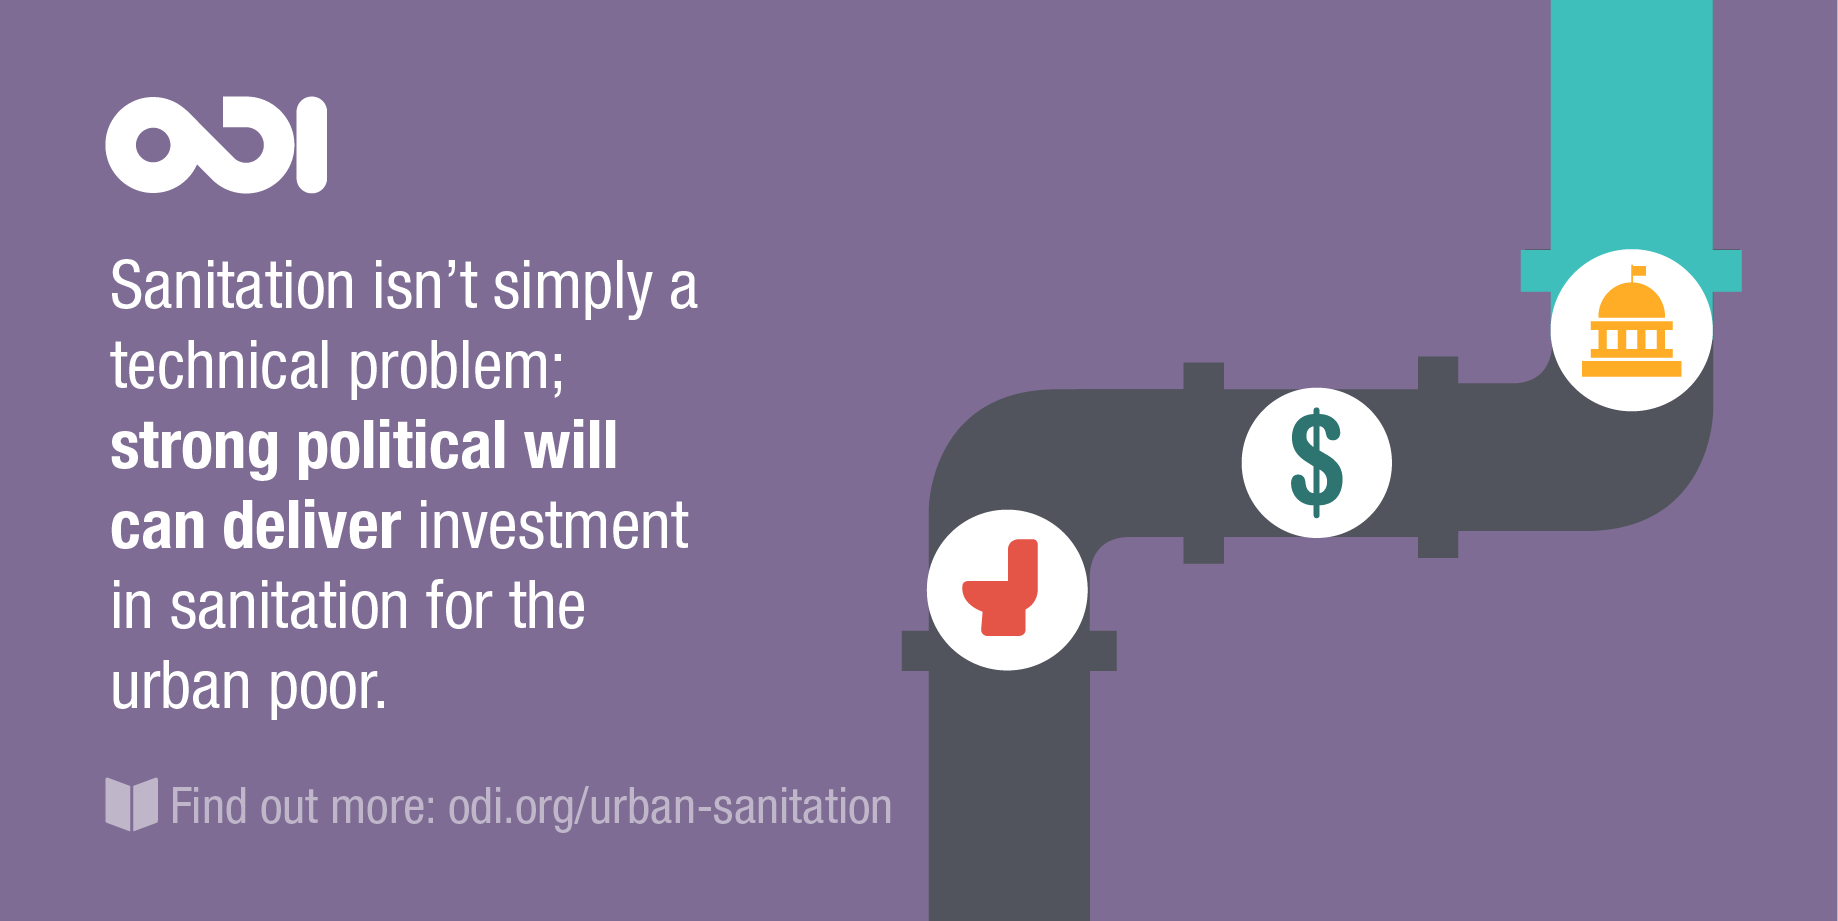 Sanitation isn't simply a technical problem; strong political will can deliver investment in sanitation for the urban poor.